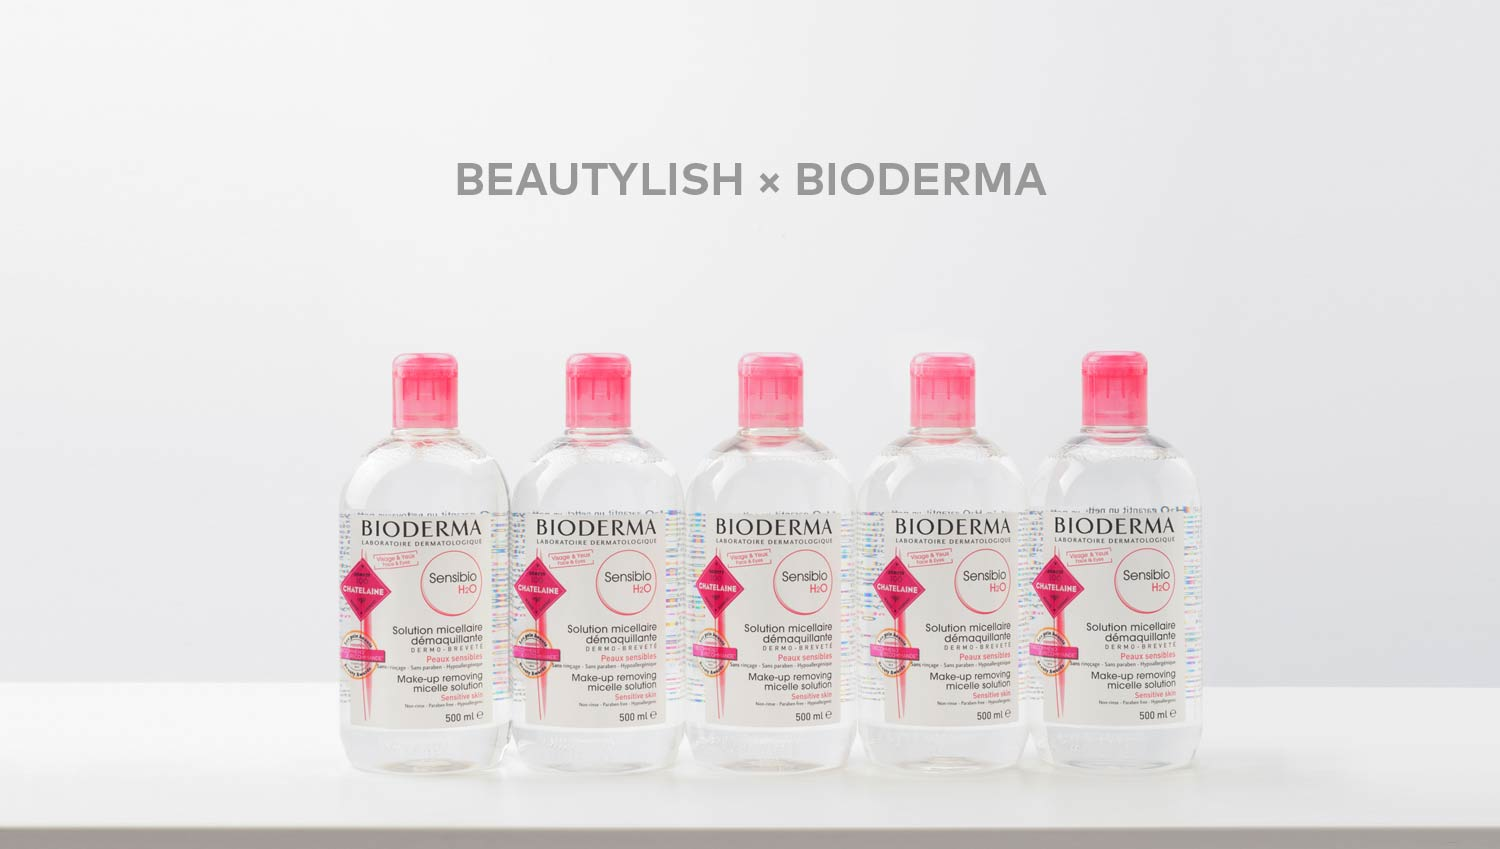 bioderma_bottles.jpg